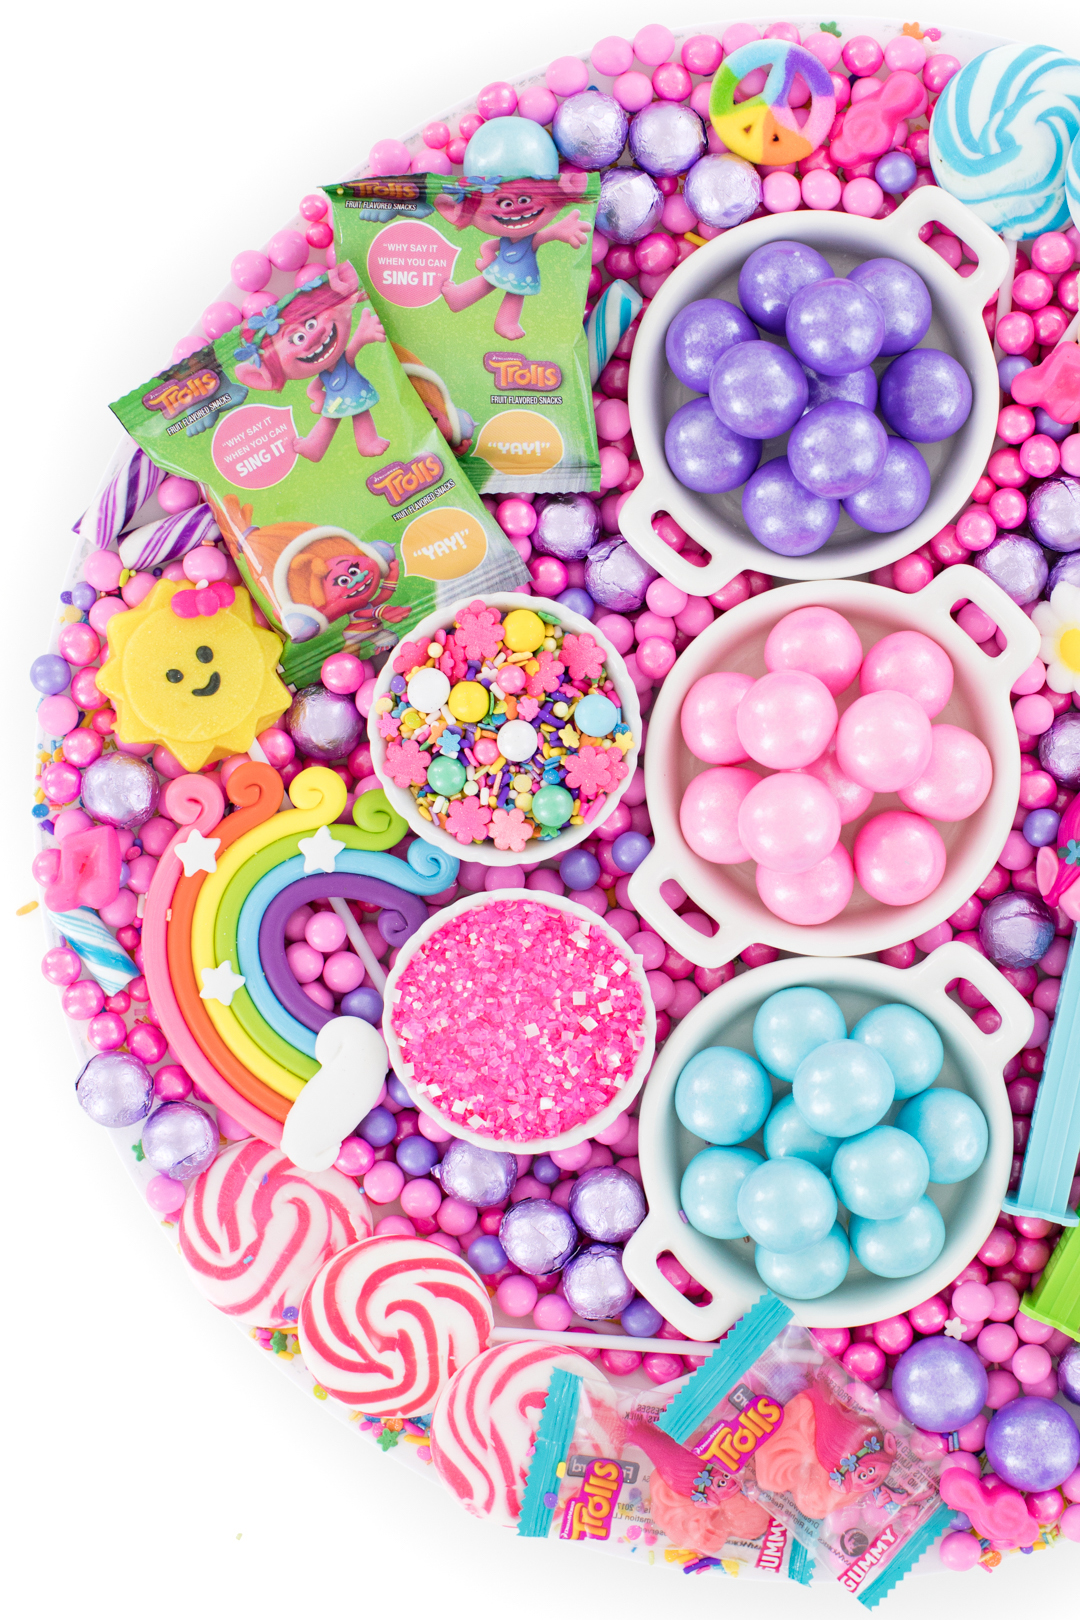 trolls party candy ideas. colorful tray of candies that match trolls characters